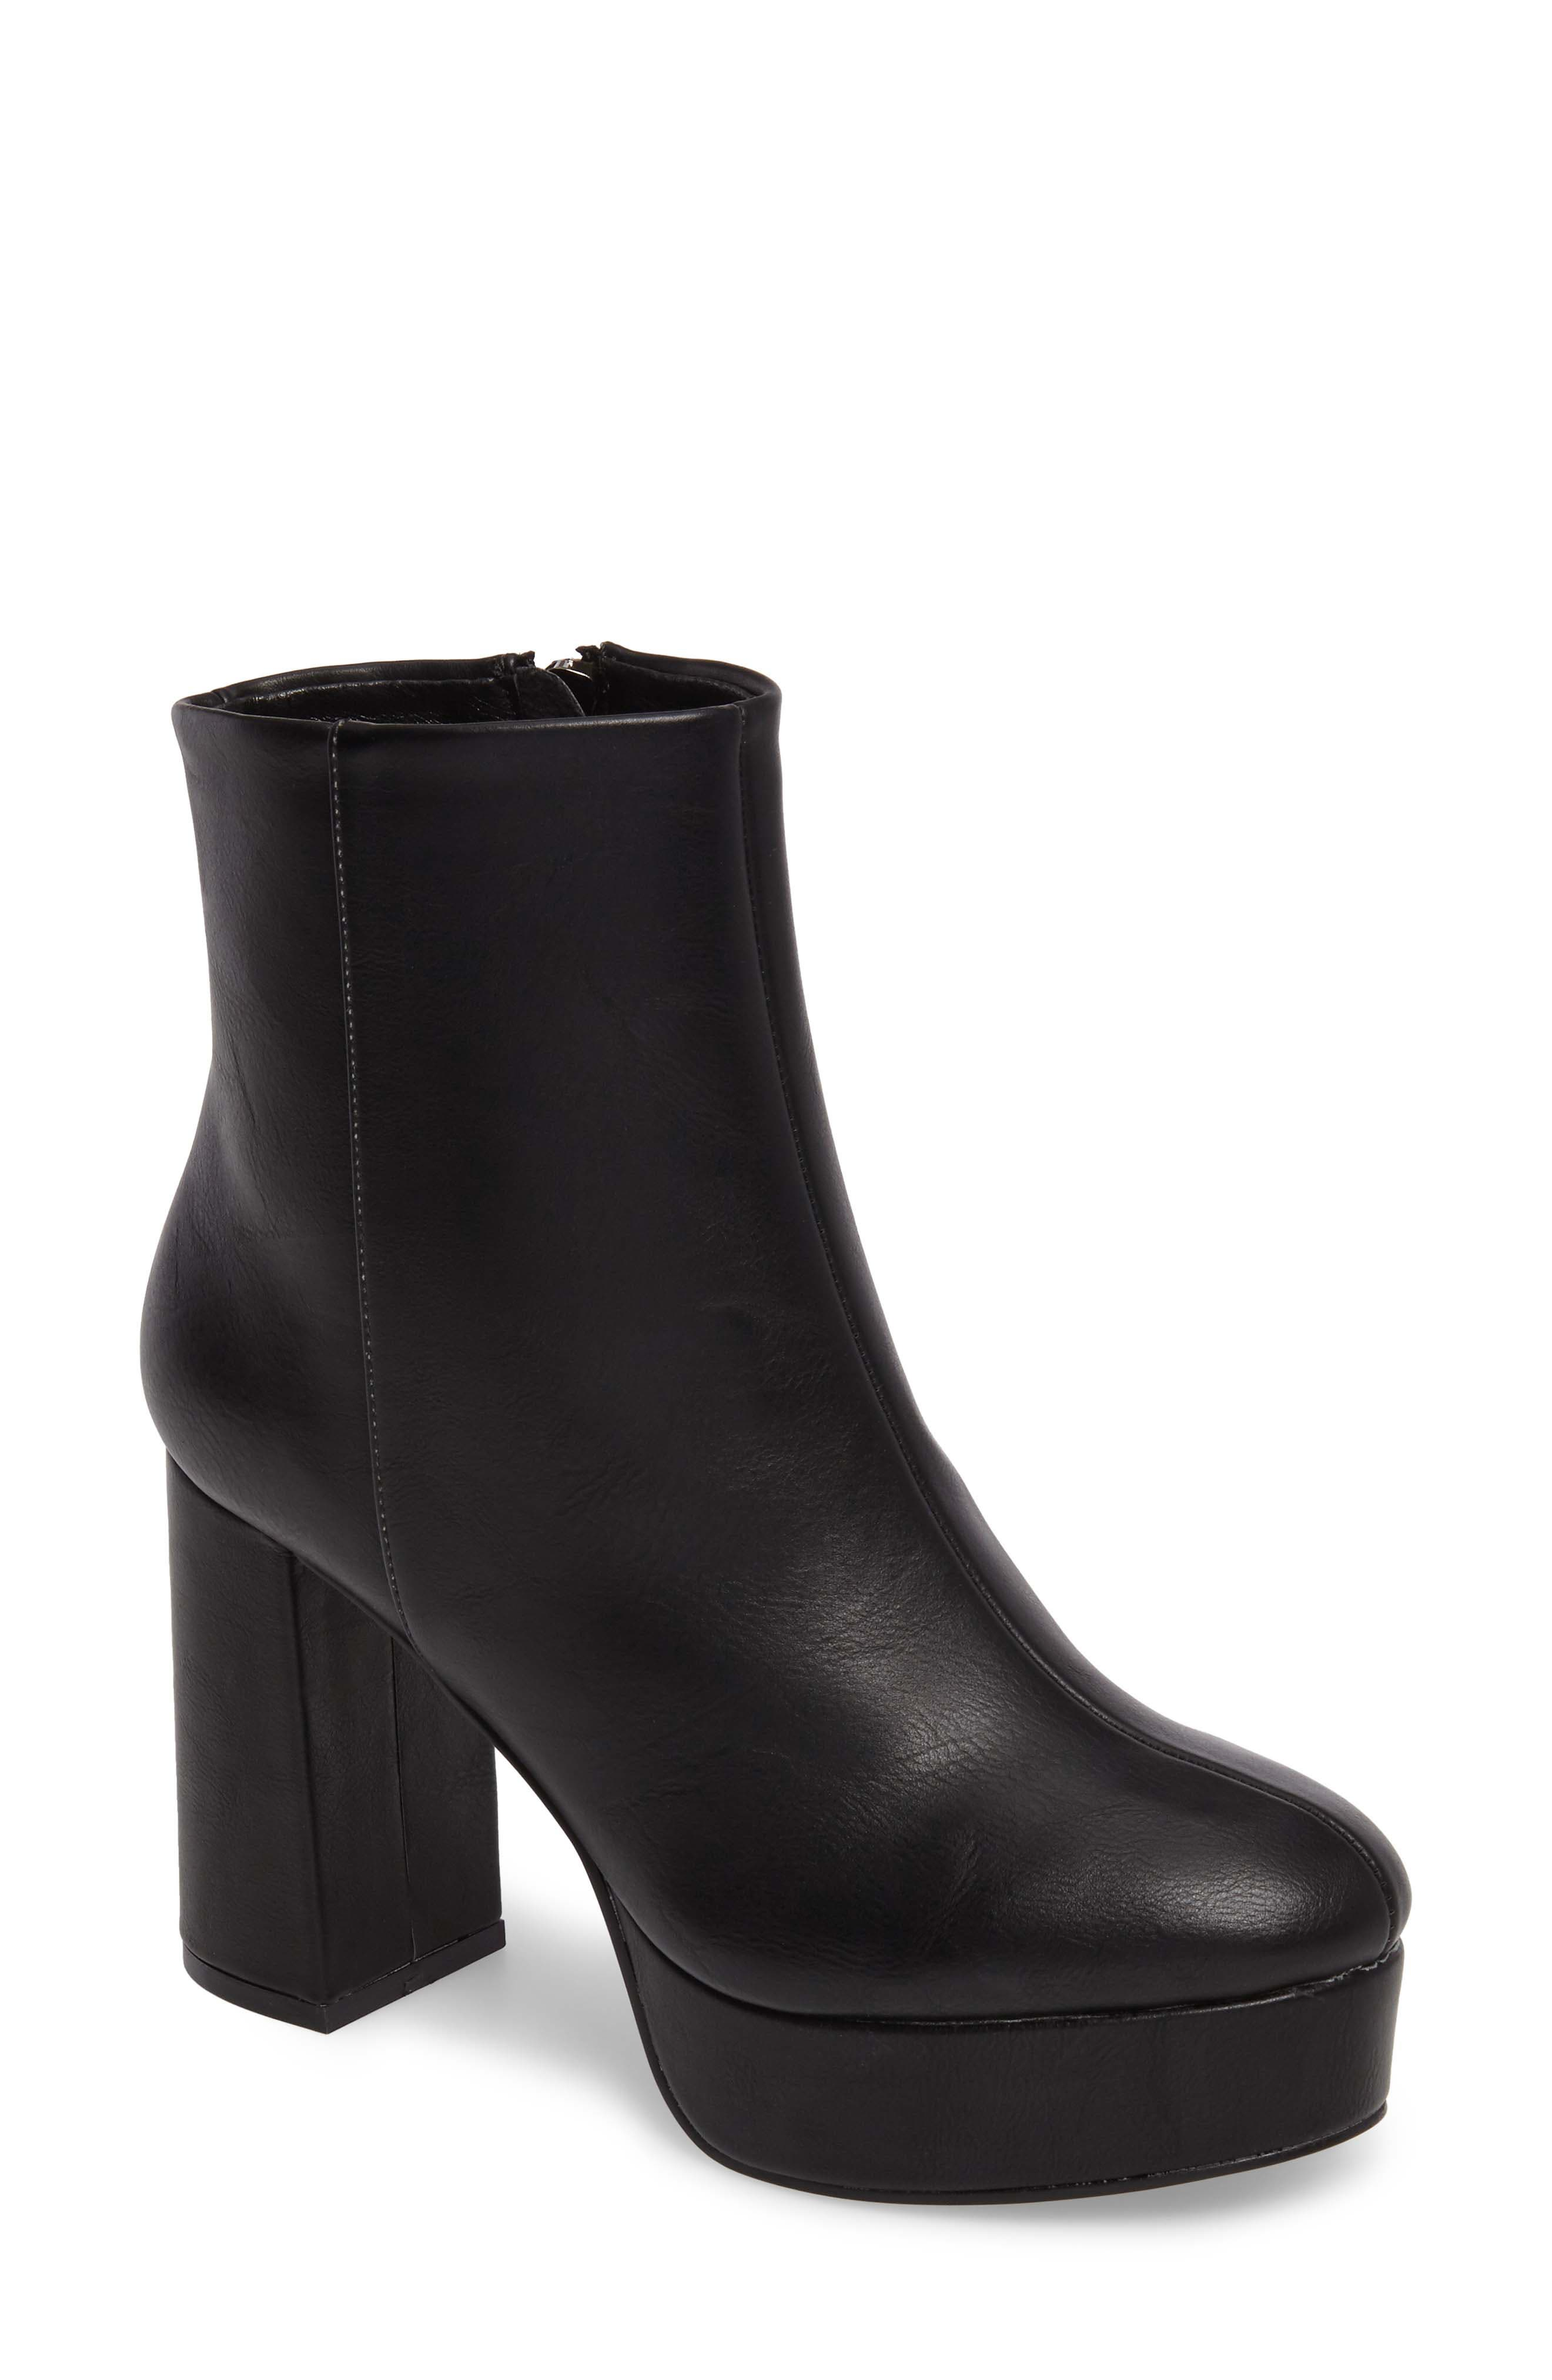 Nenna Platform Bootie,                             Main thumbnail 1, color,                             Black